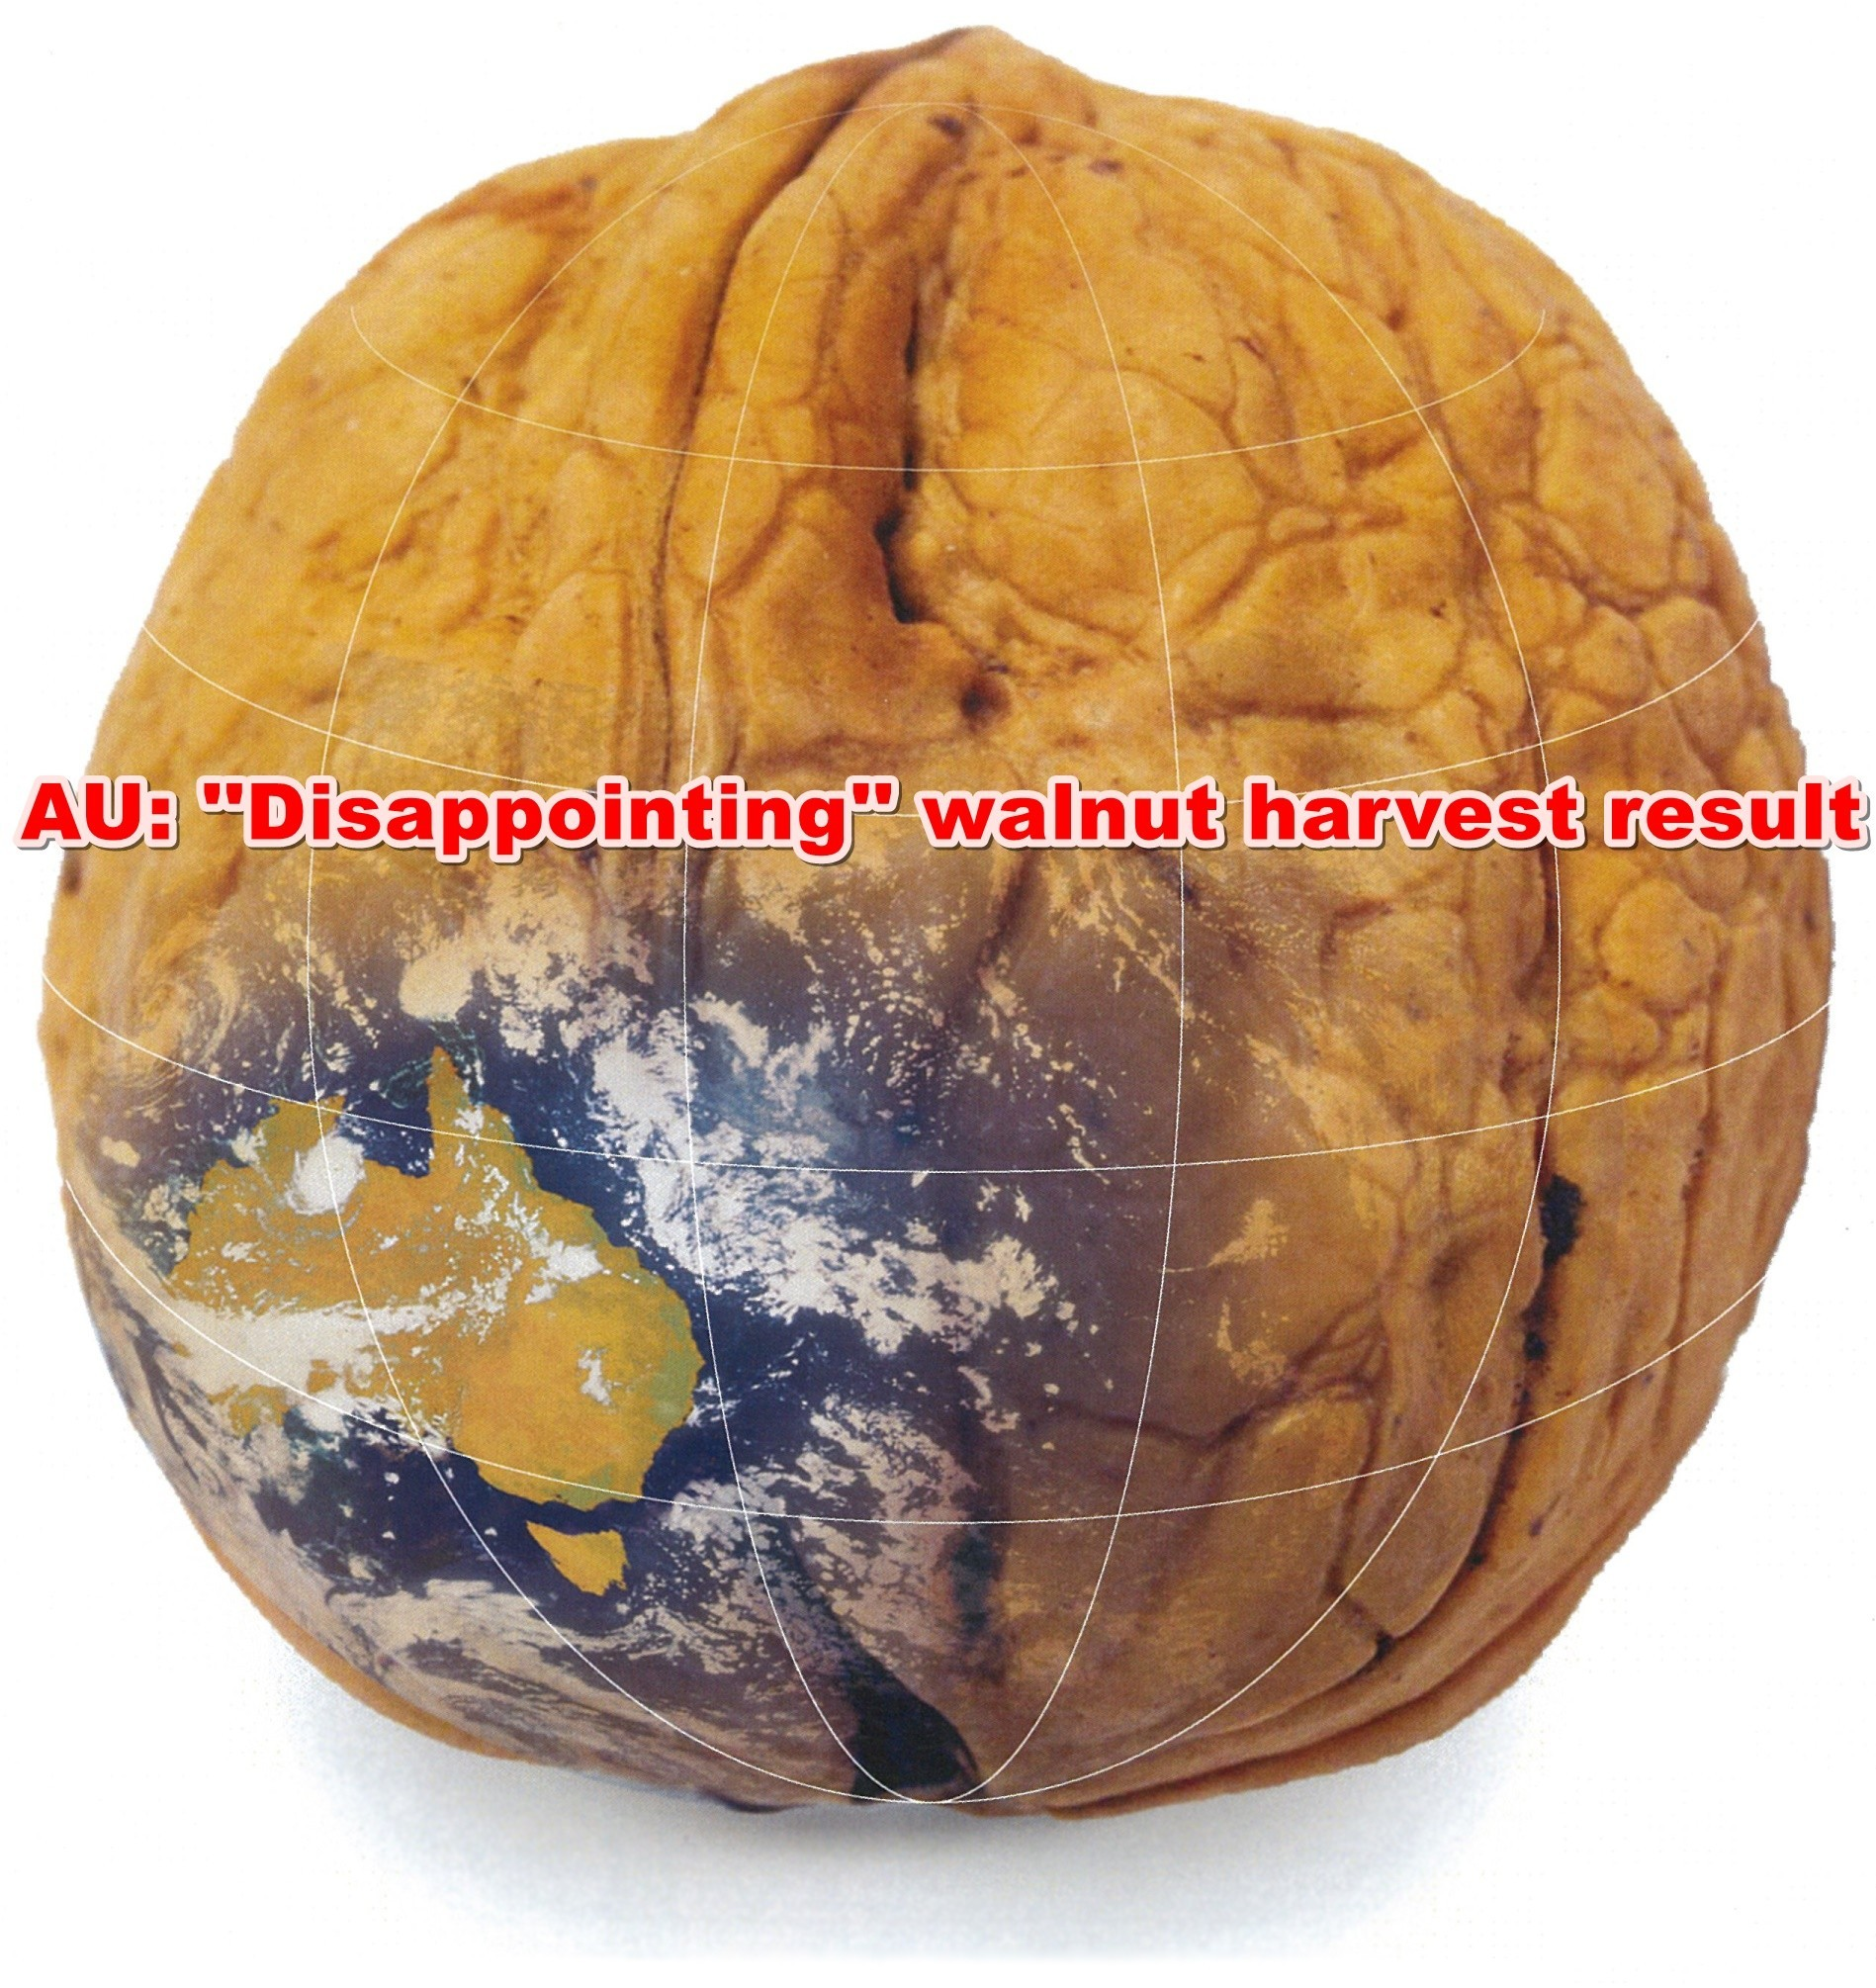 AU: 'Disappointing' walnut harvest result